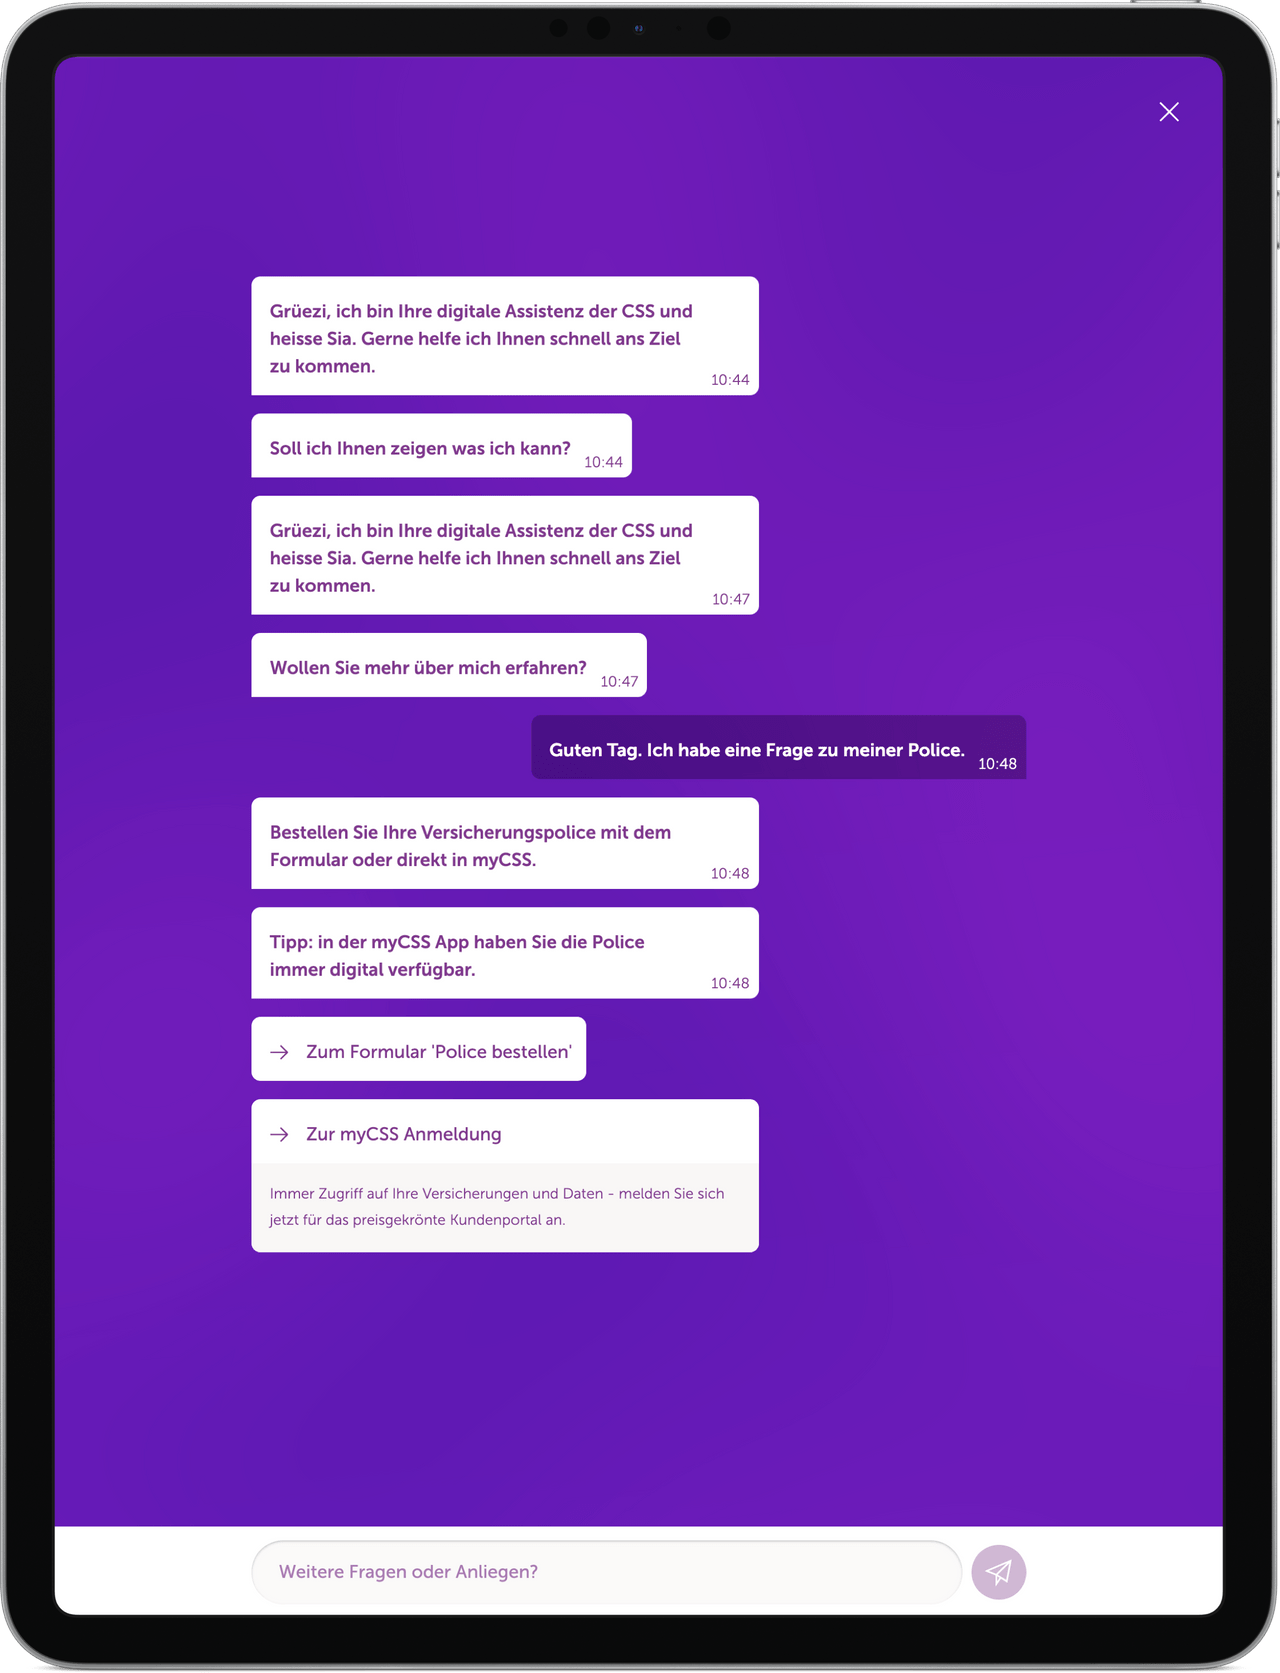 Great chatbot interface